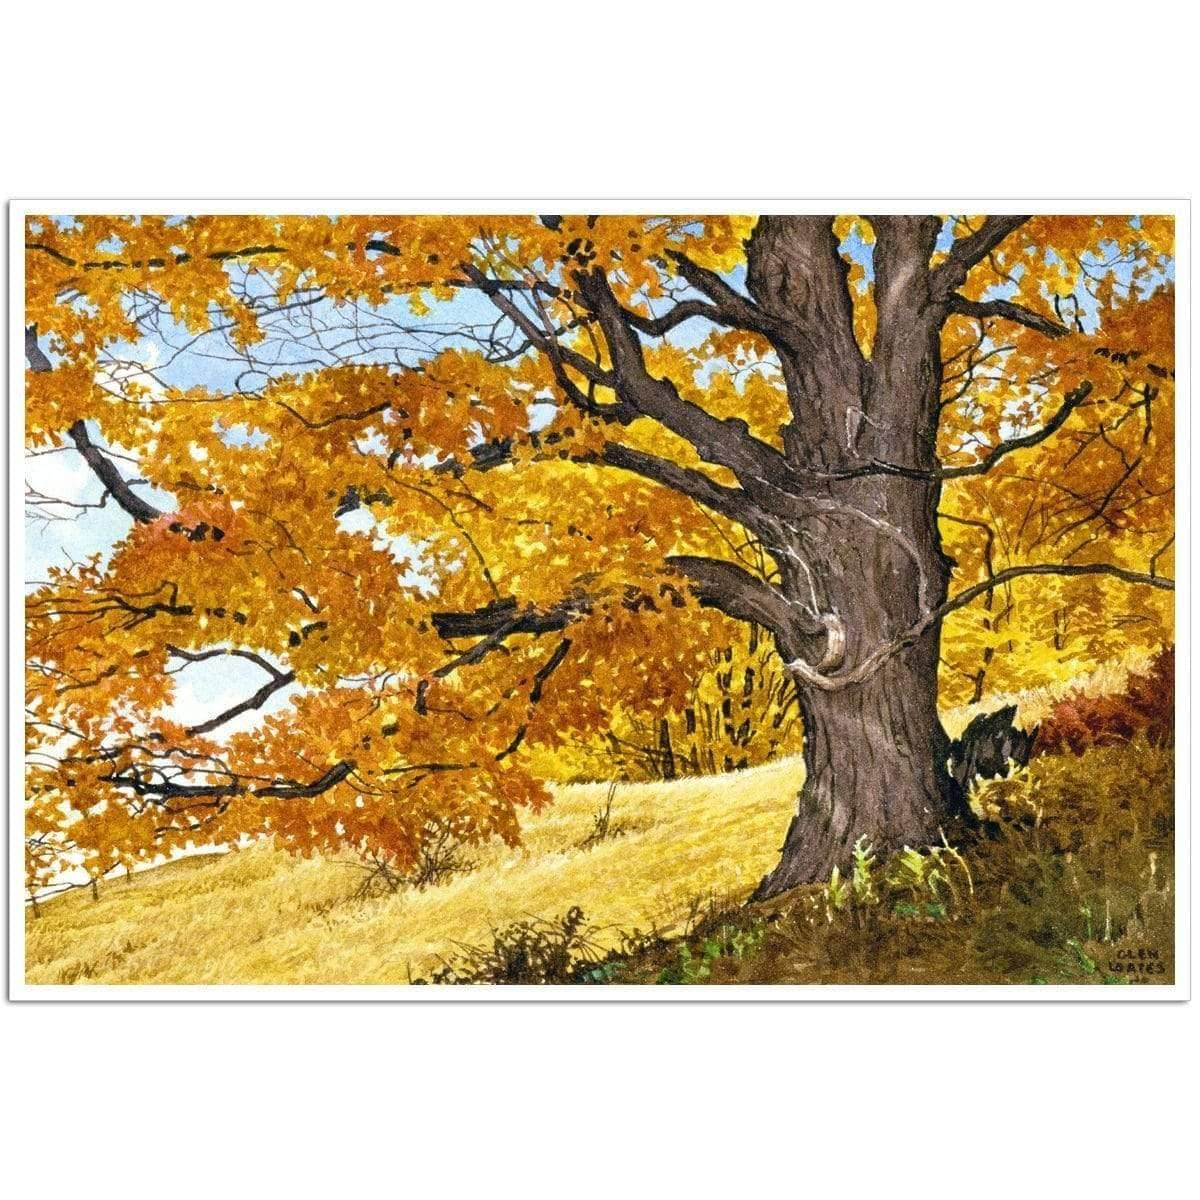 Autumn Day - Art Print by Glen Loates from the Glen Loates Store